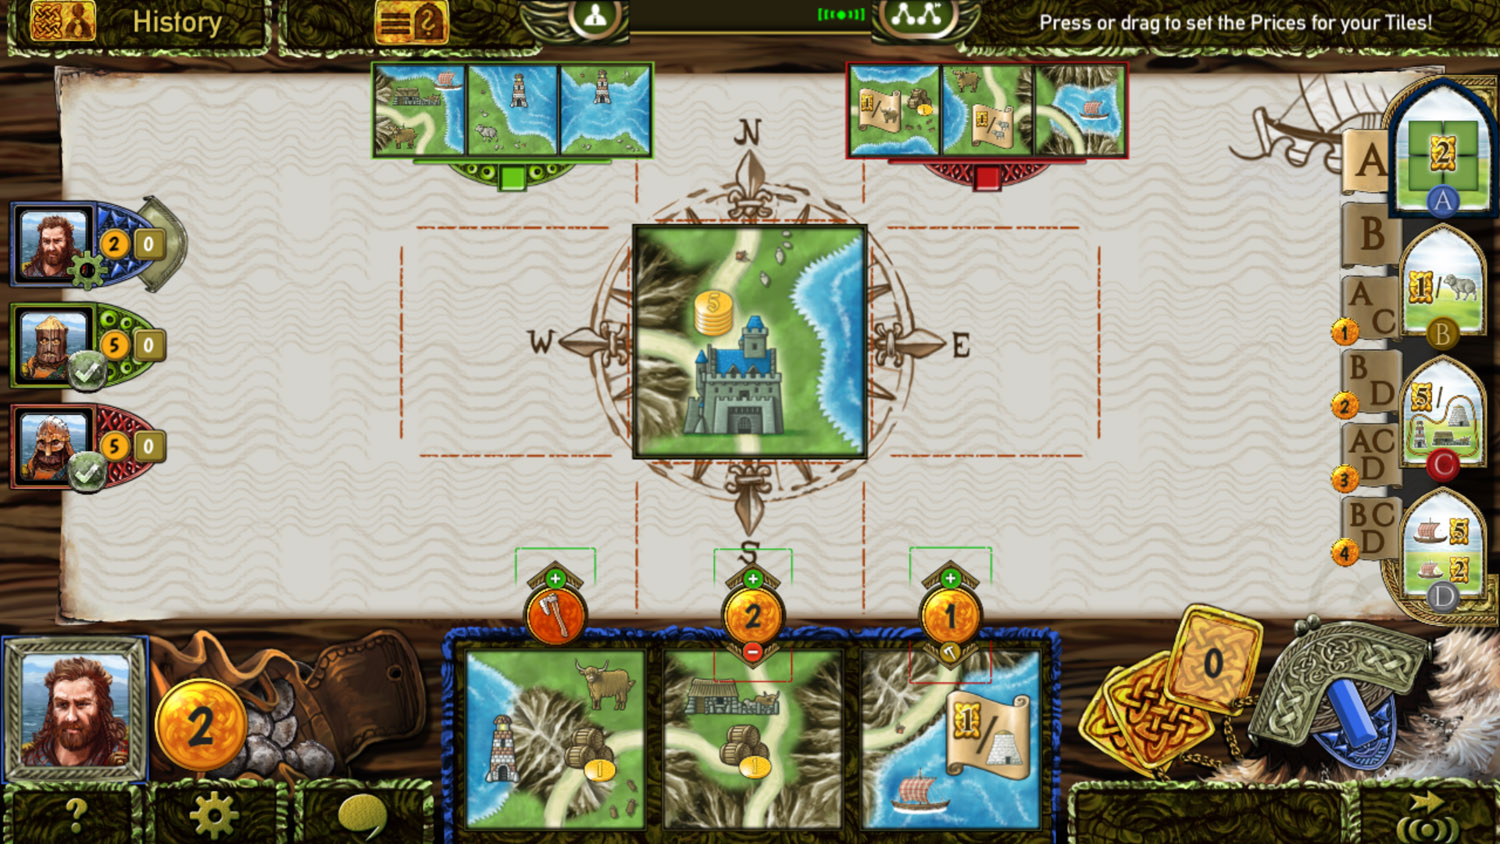 Digital Board Game Spotlight: Isle of Skye